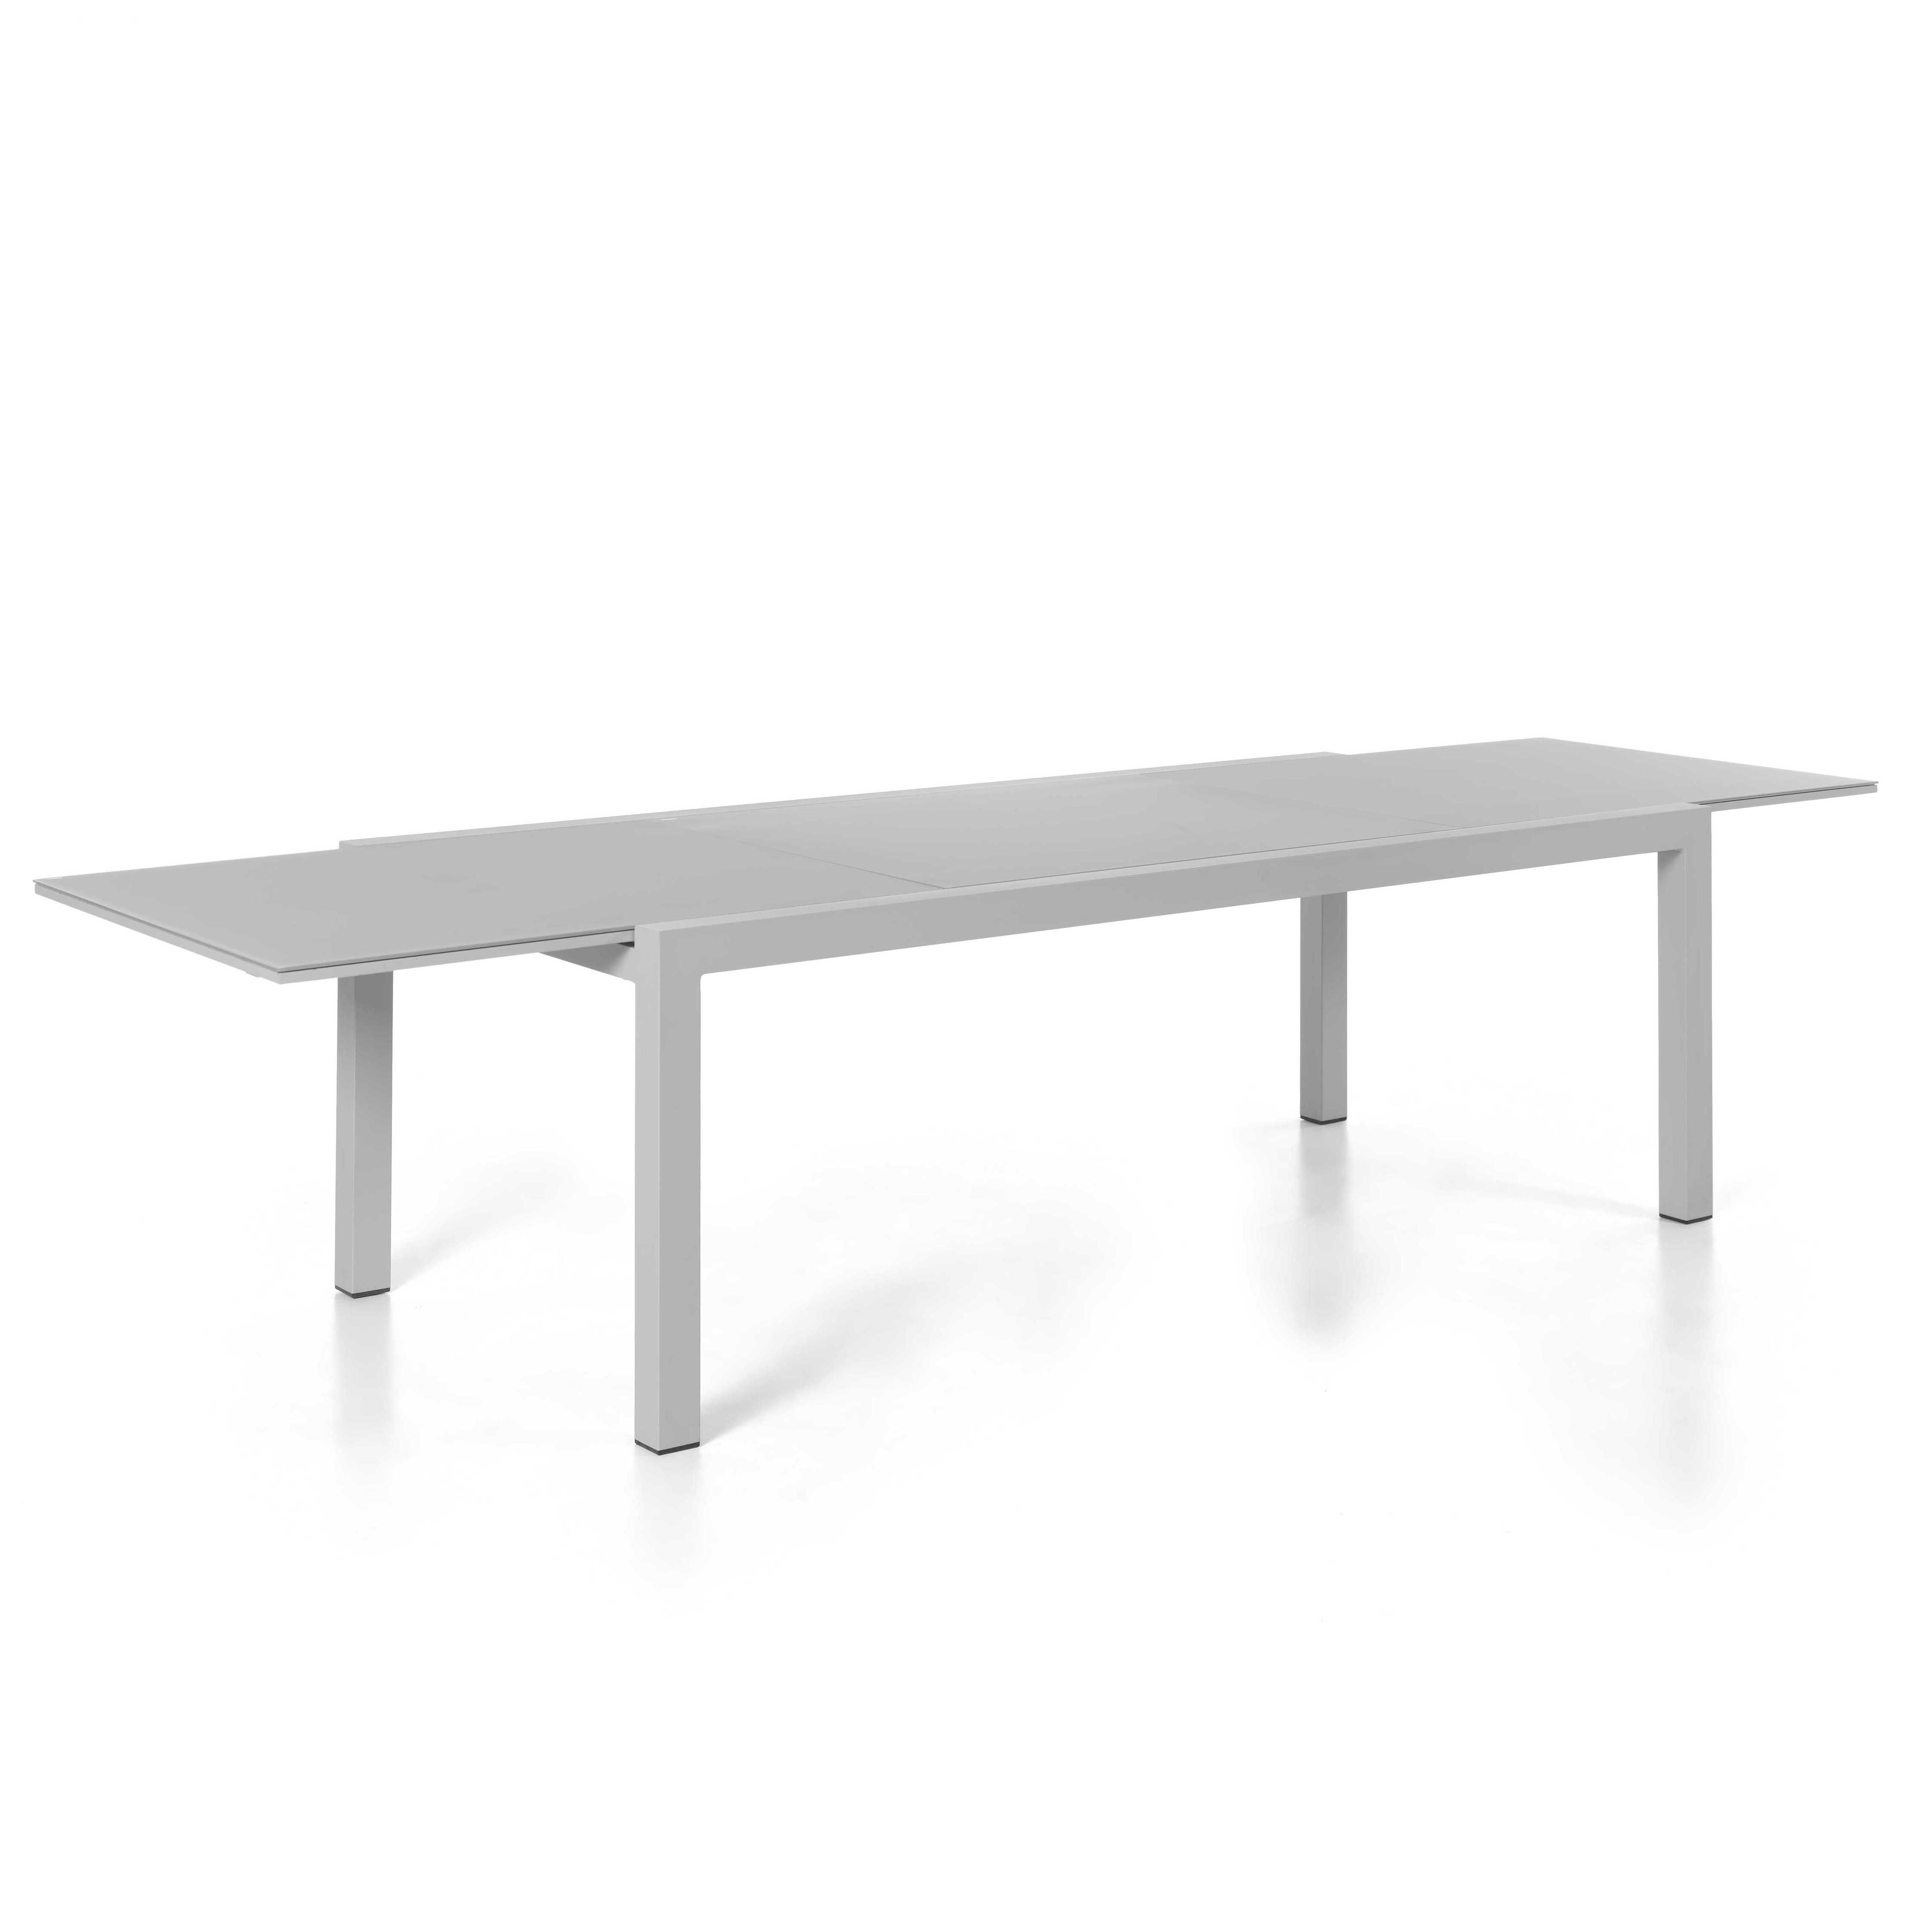 Table de jardin extensible Kingstown 220/330 - gris argenté